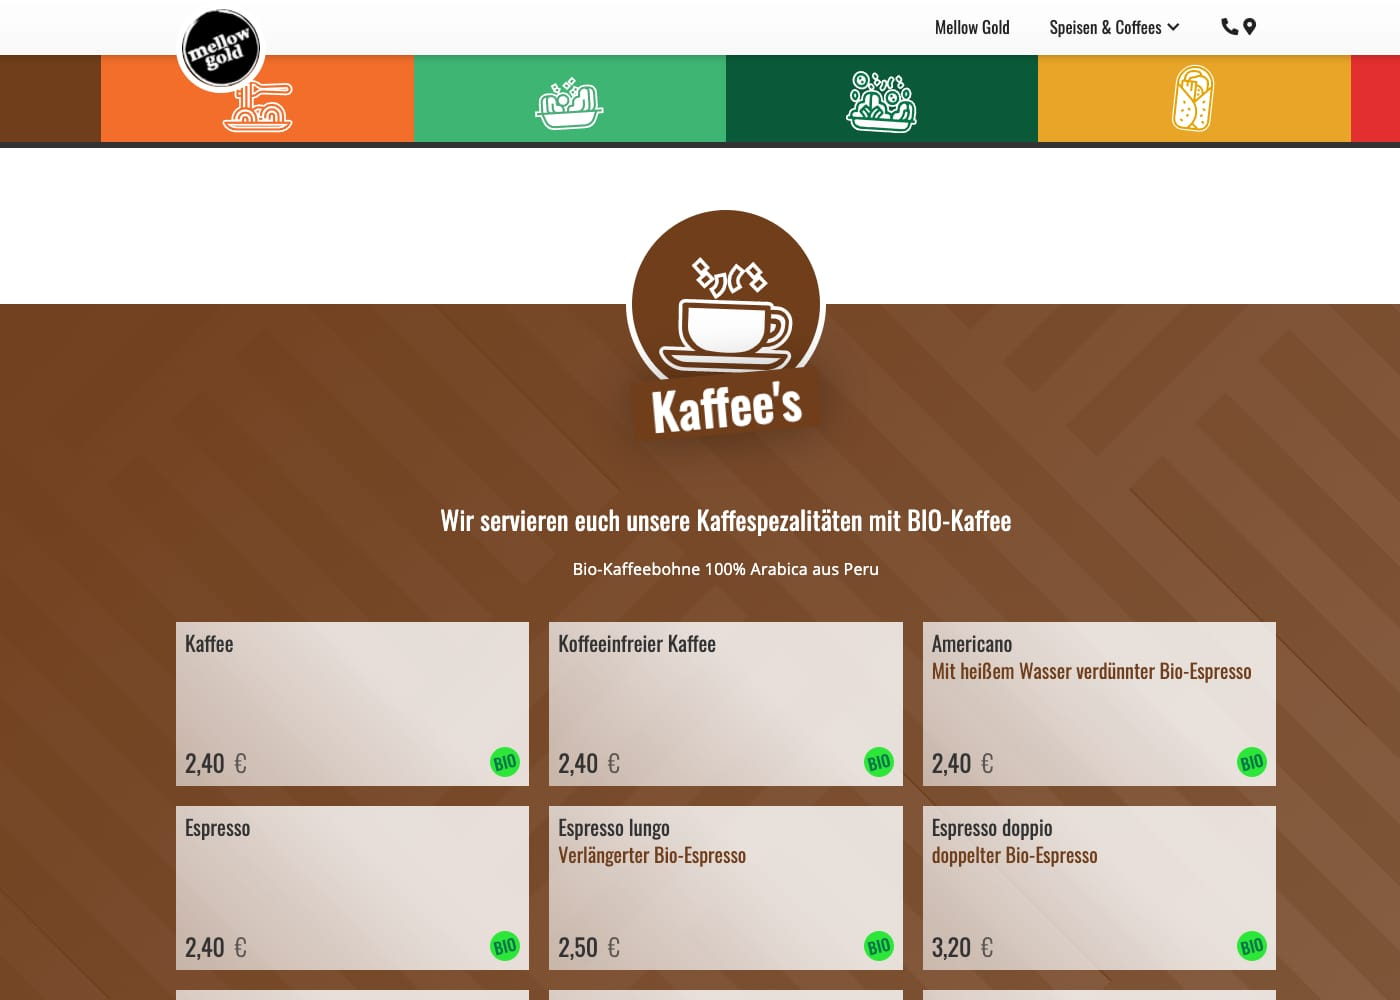 Screen der Website »mellow-gold.de« mit der Kaffeekarte